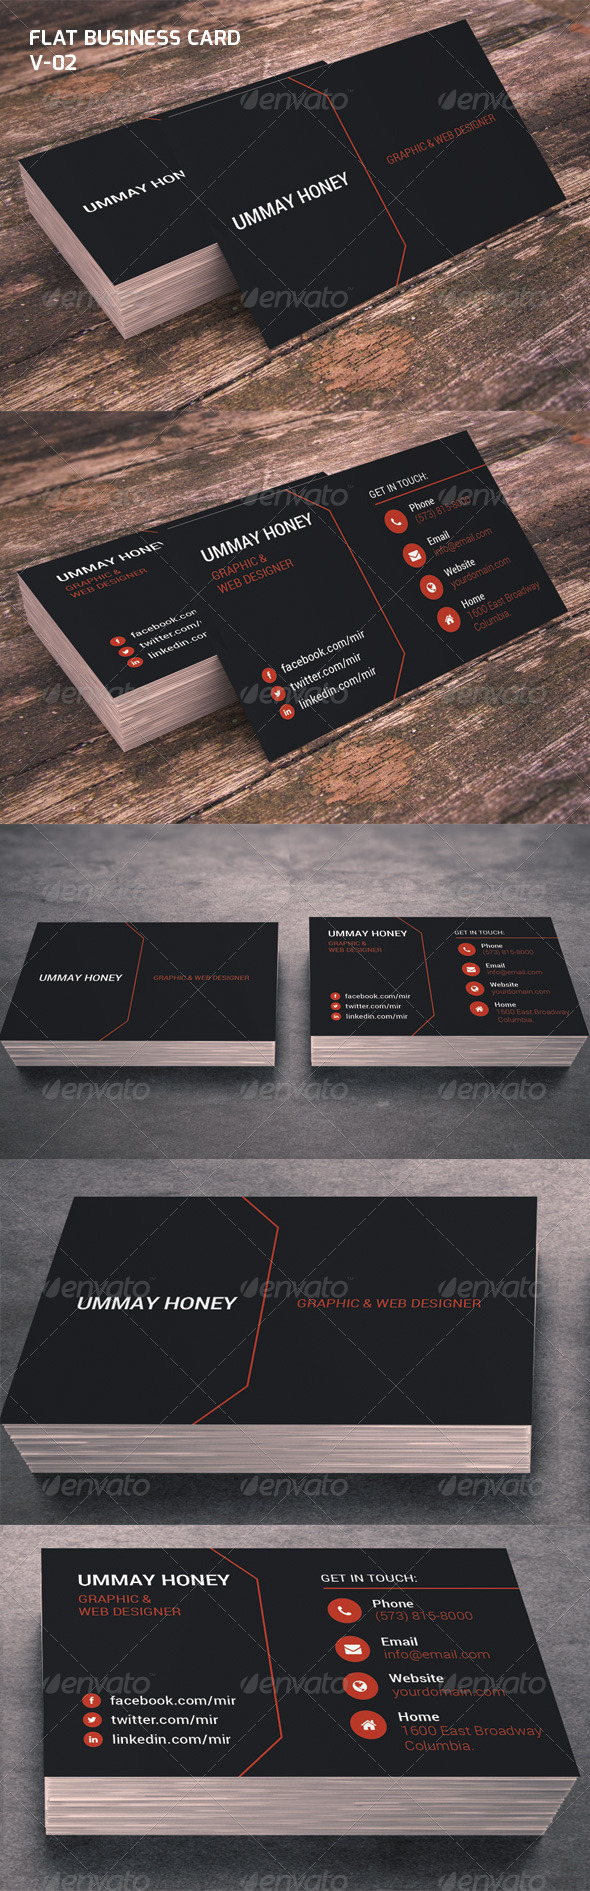 GraphicRiver Flat Business Card V-02 6758036